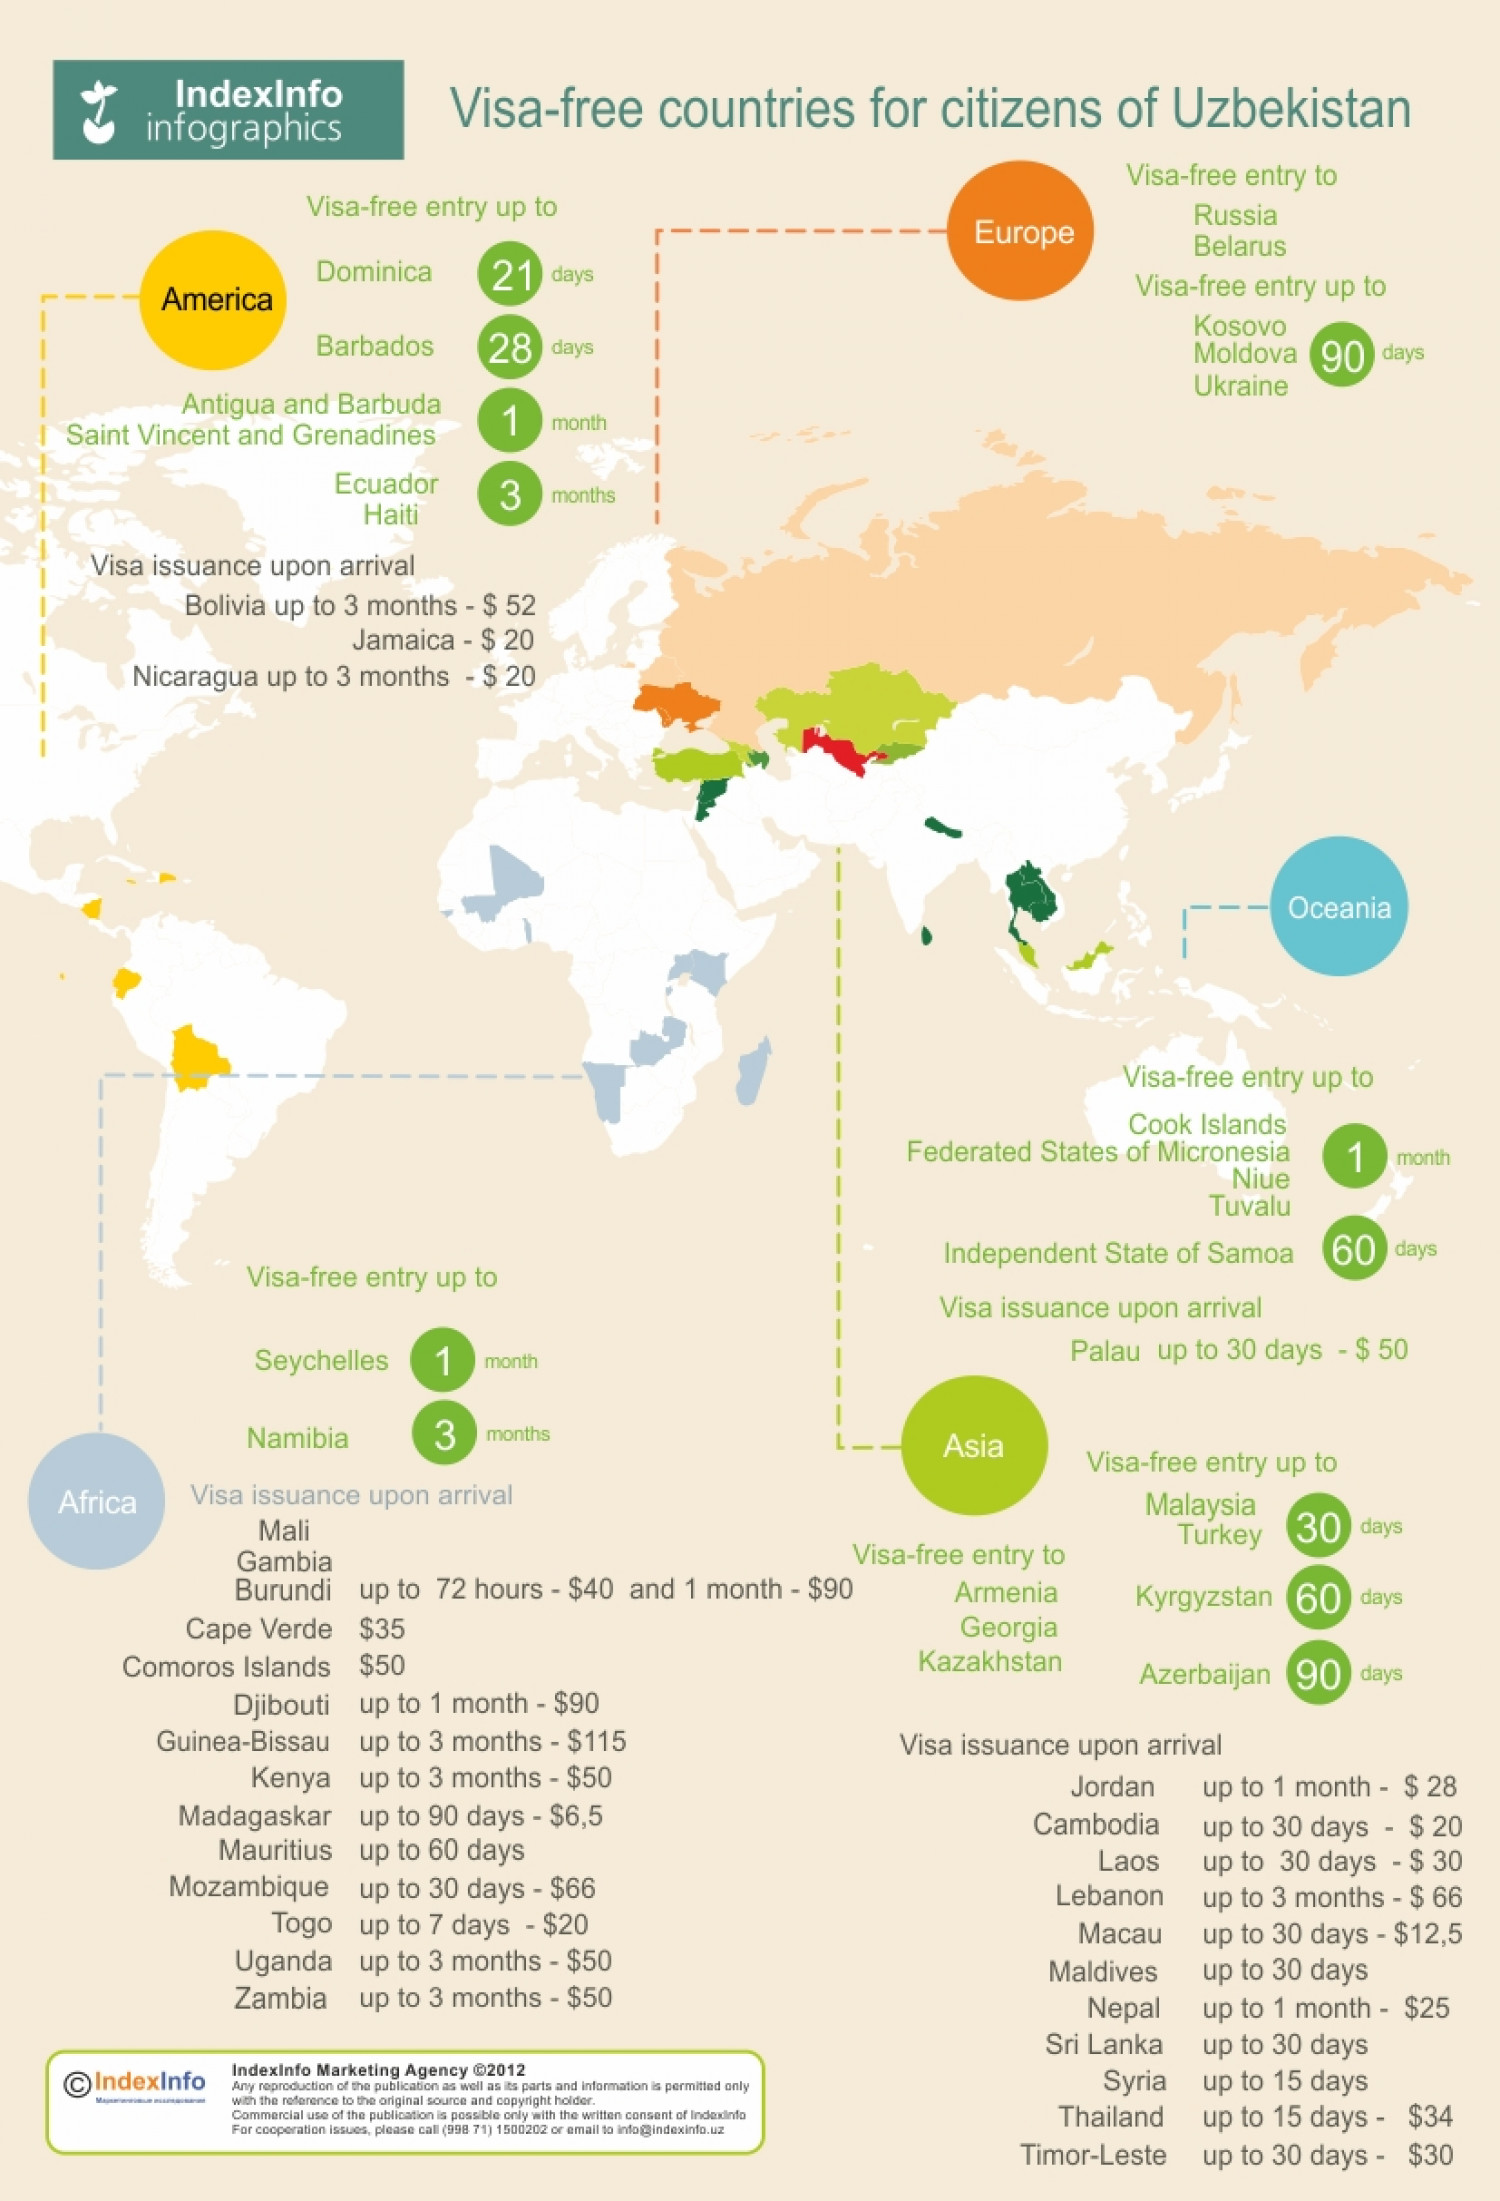 Visa-free countries for citizens of Uzbekistan Infographic